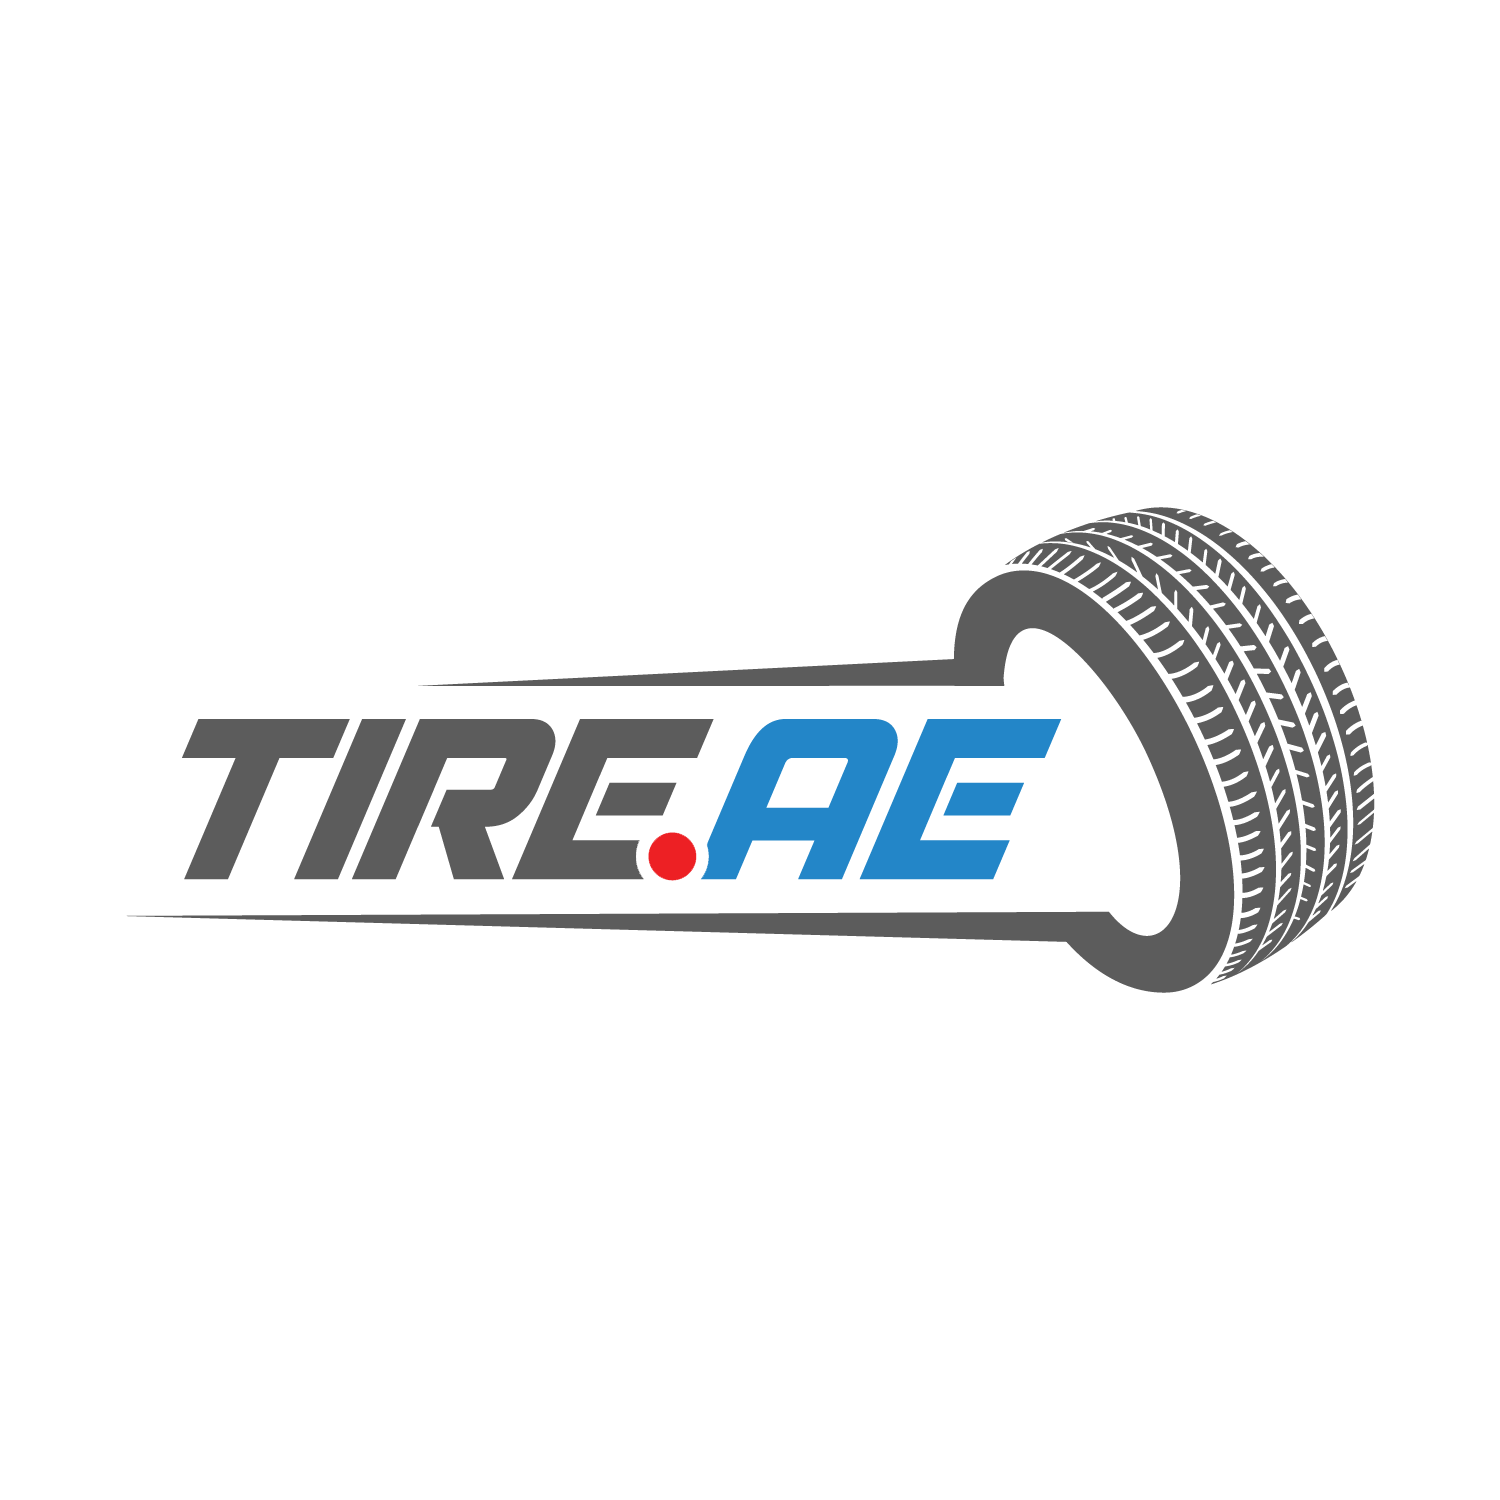 Tire.ae_logo.png